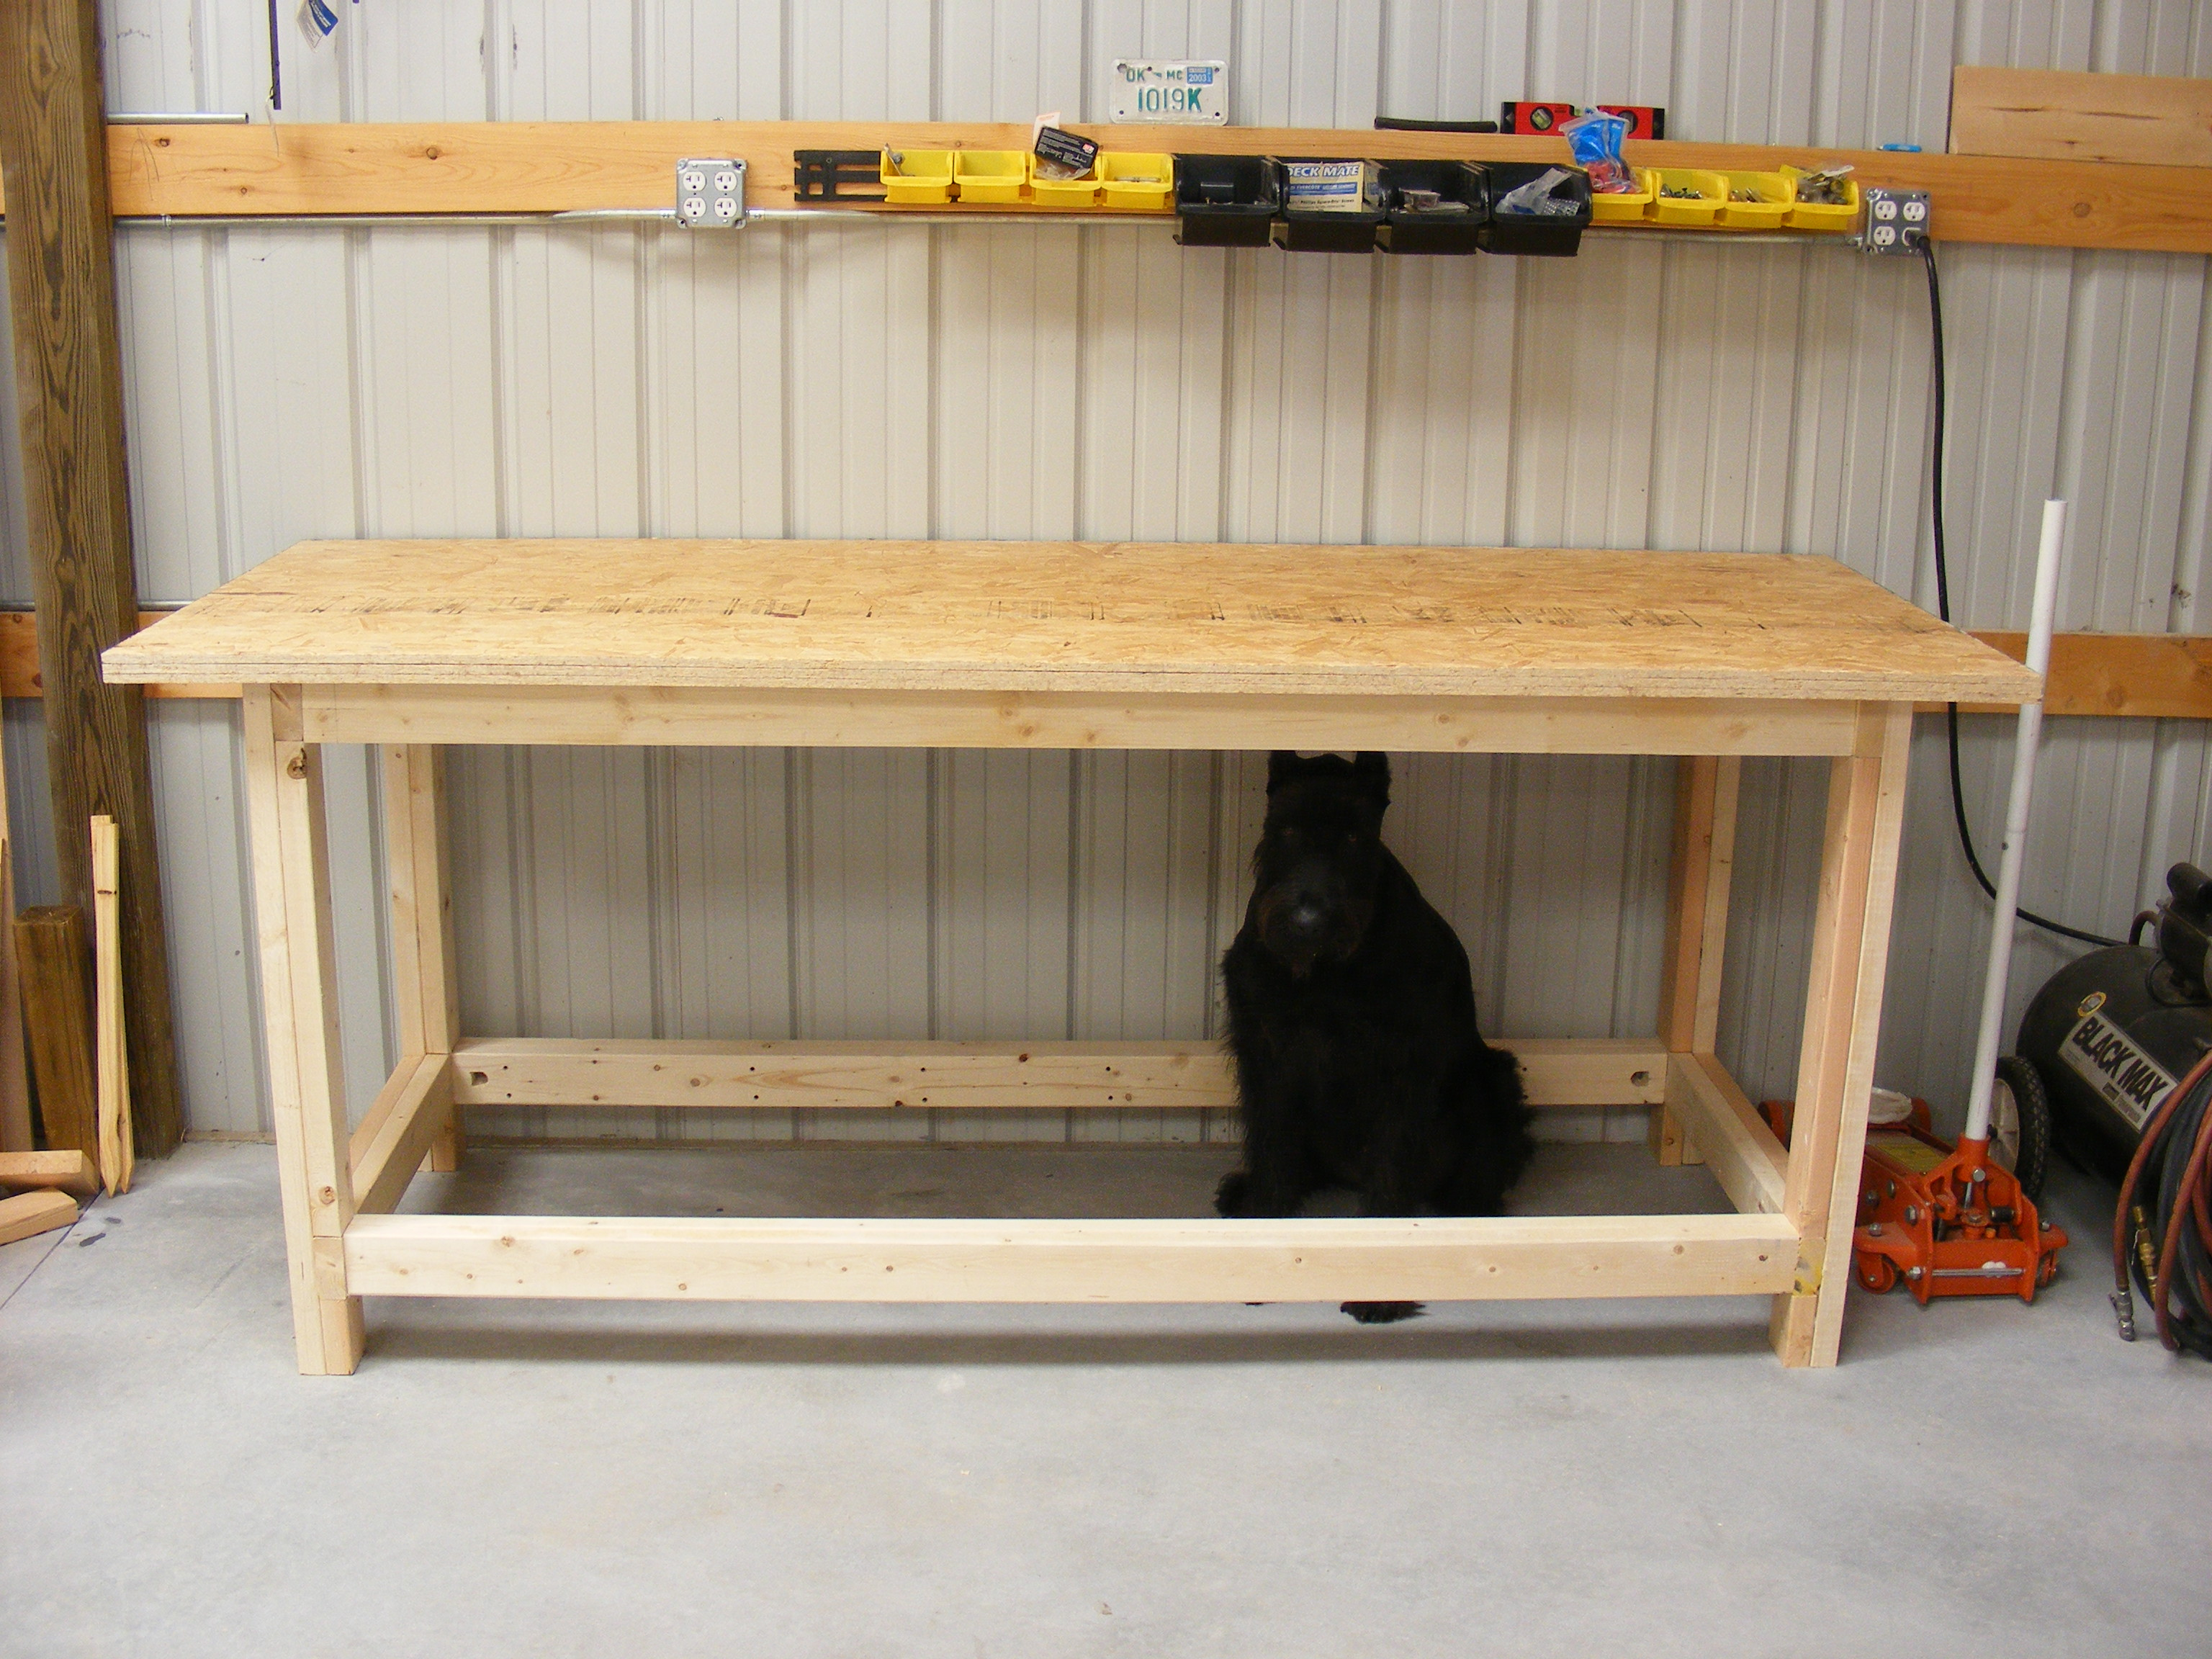 Download Workbench Plans 2×4 PDF workbench cabinet plans free